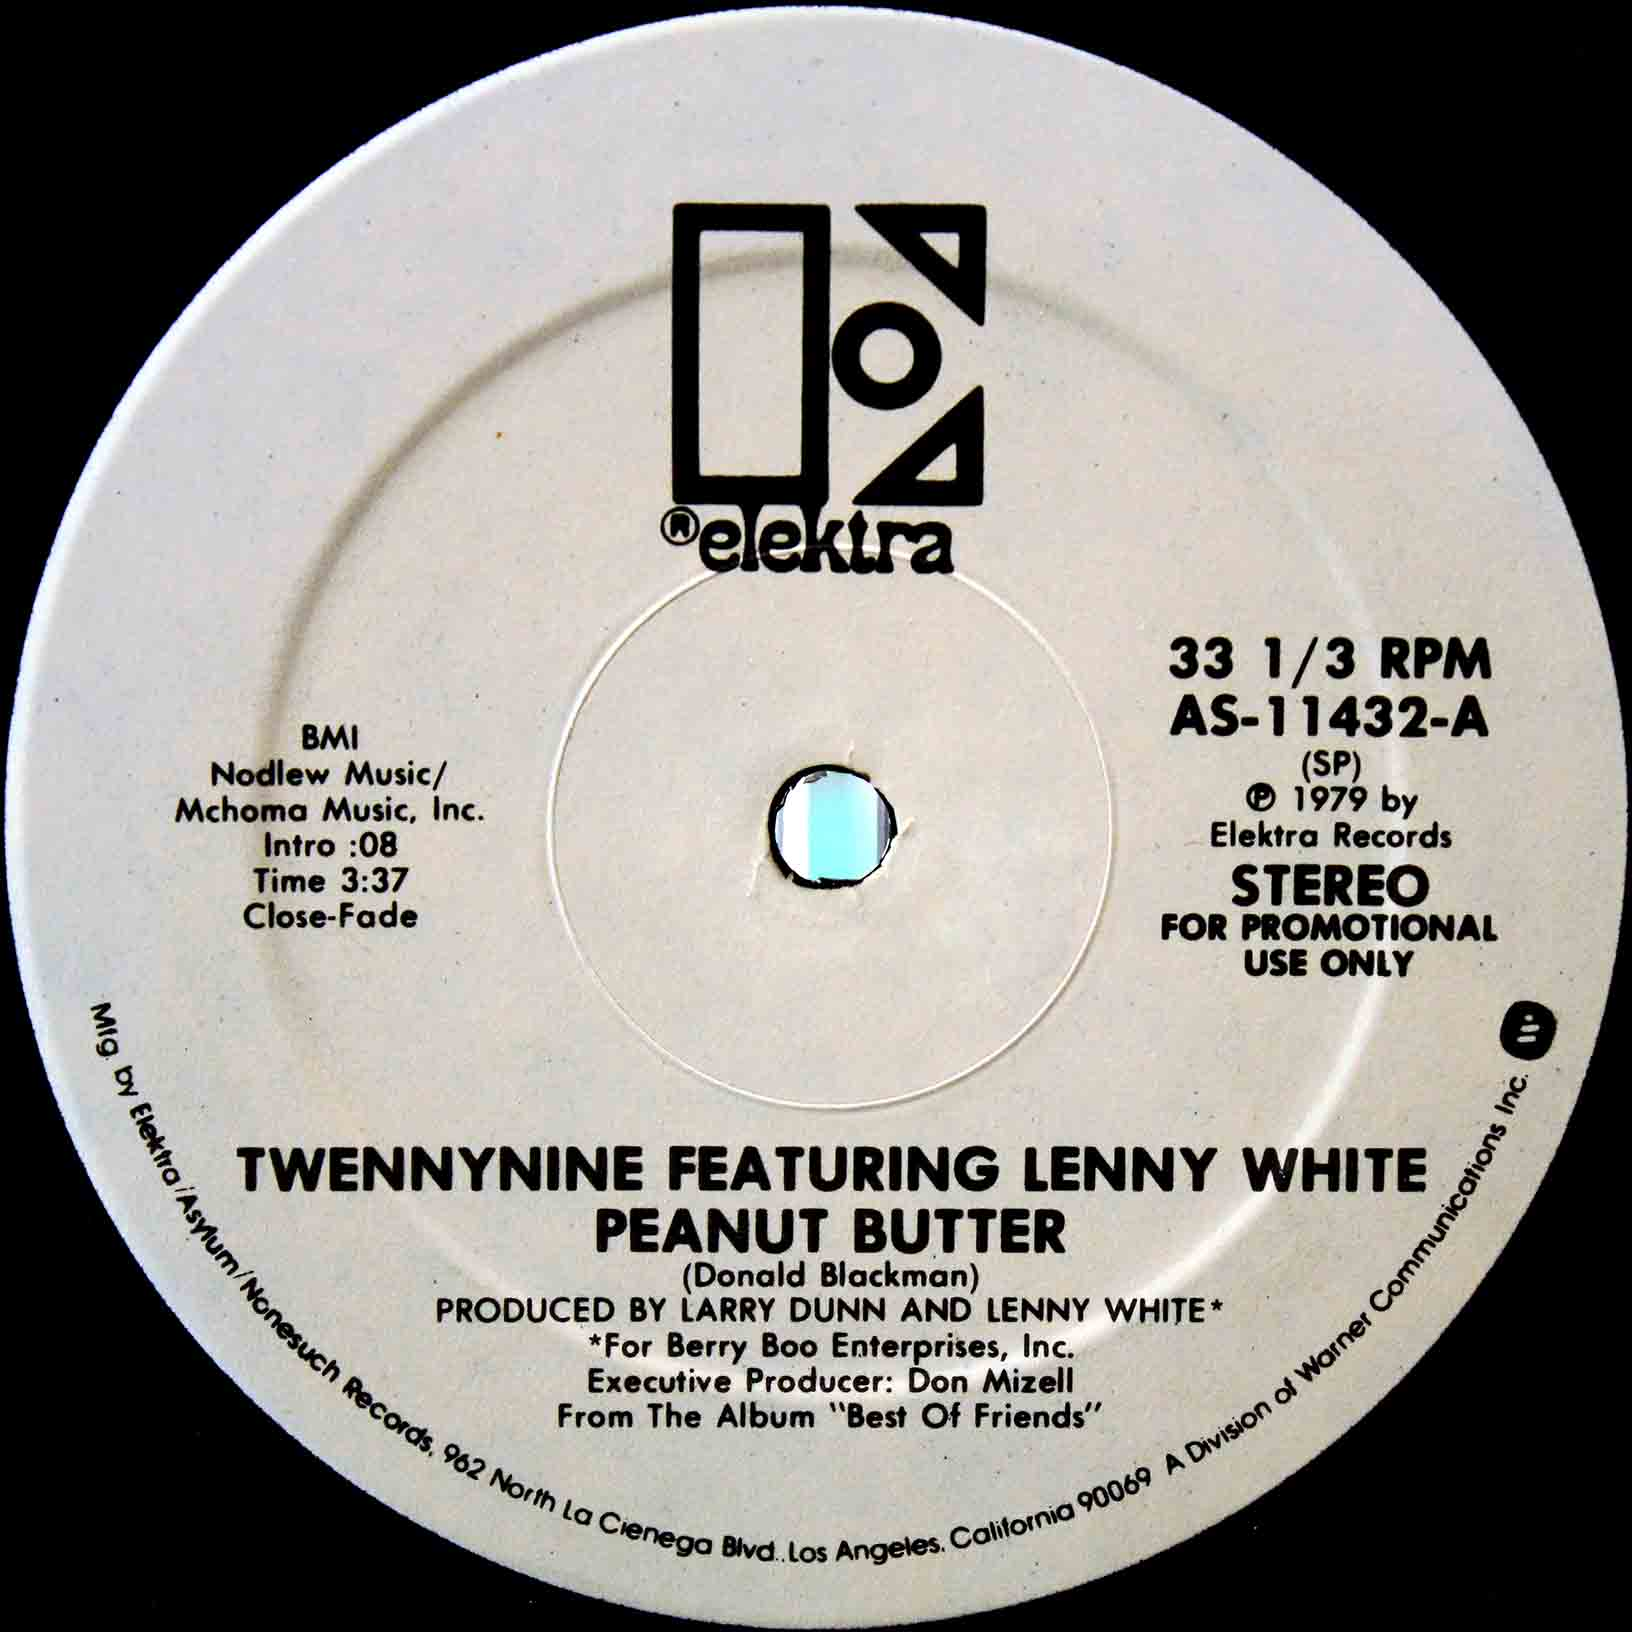 Twennynine Featuring Lenny White Peanut Butter 03